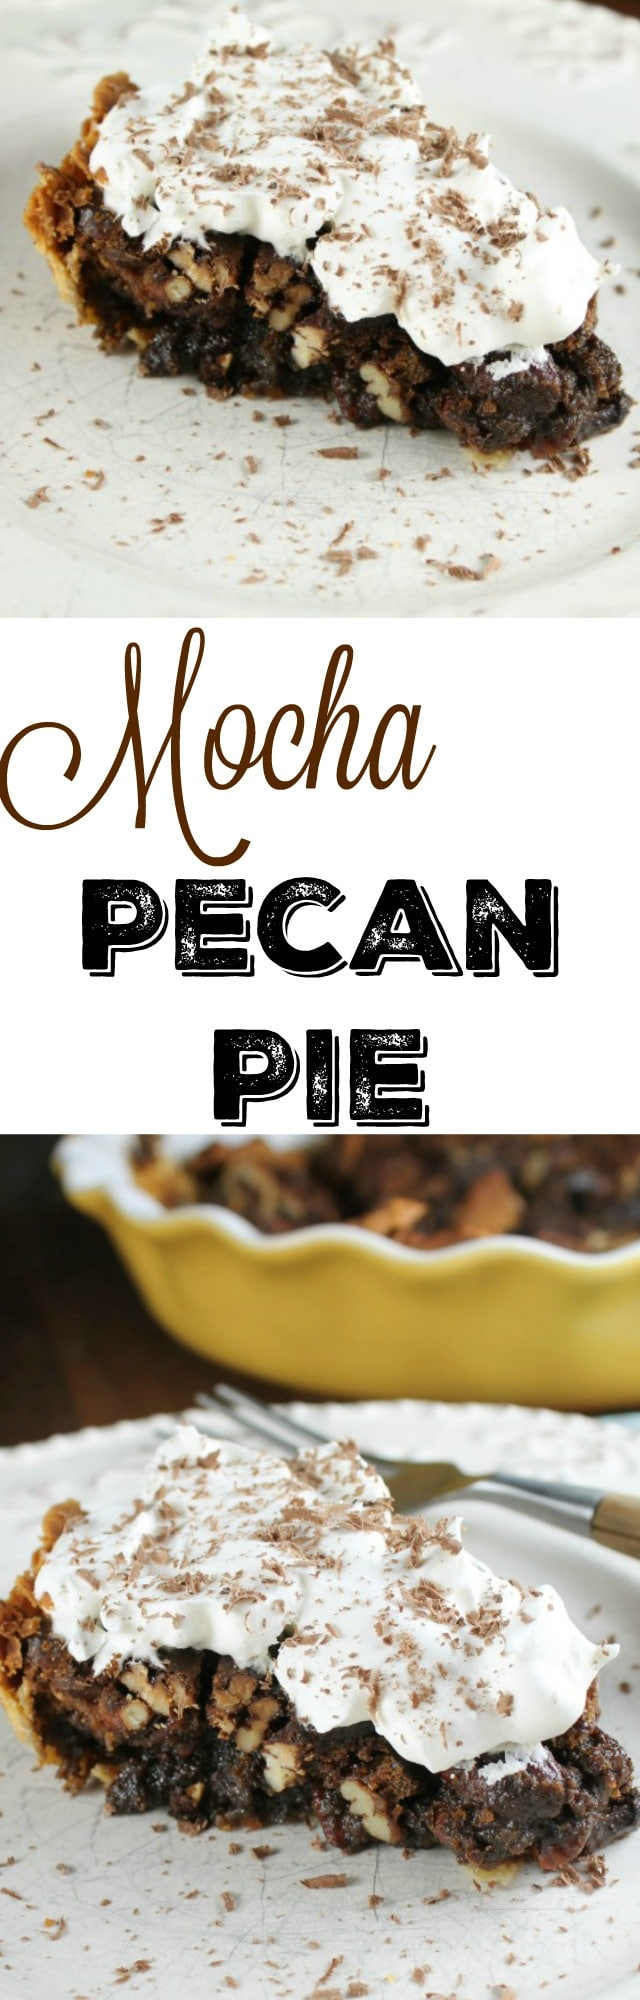 Mocha Pecan Pie Recipe Found at Miss in the Kitchen #ad